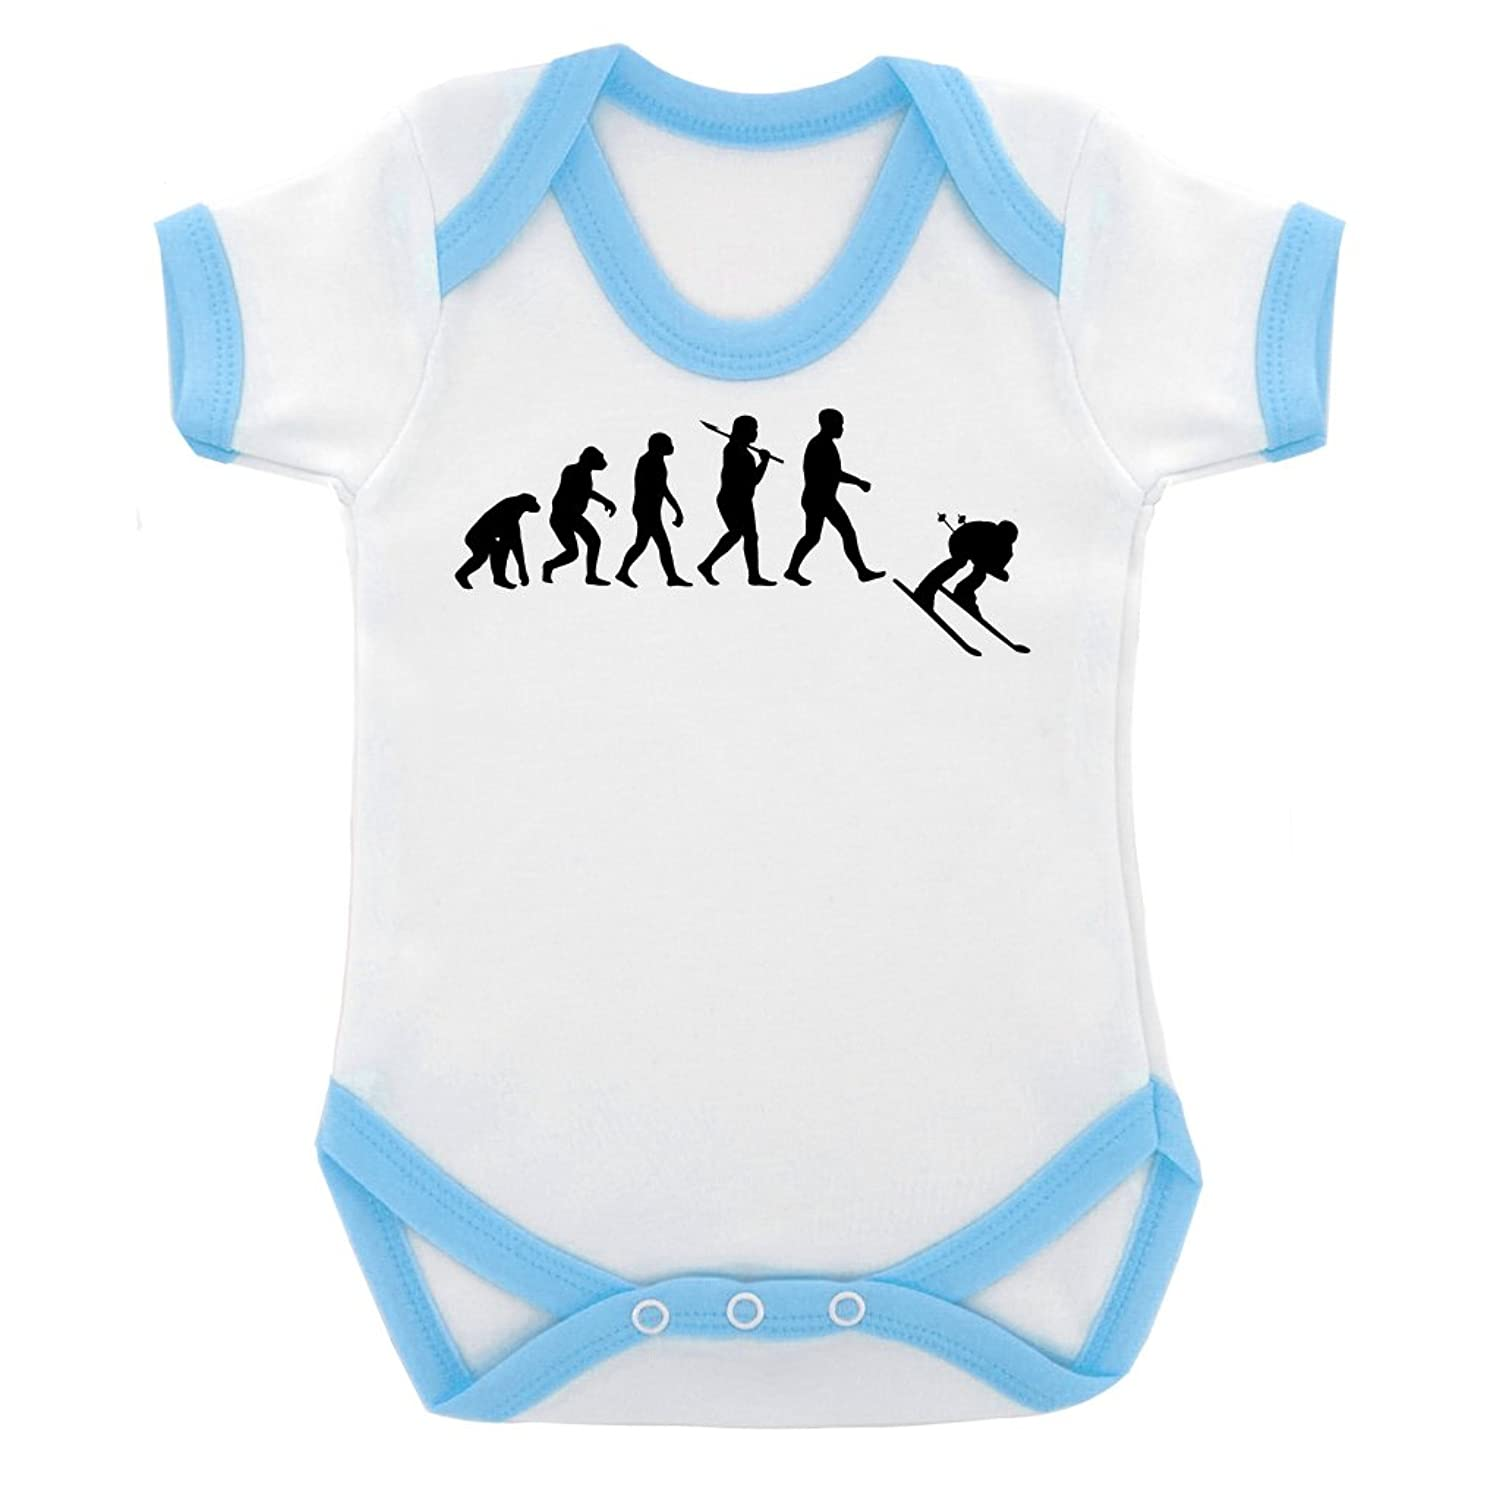 Evolution of Ski Design Baby Body mit Licht blau Kontrast Trim und schwarz print